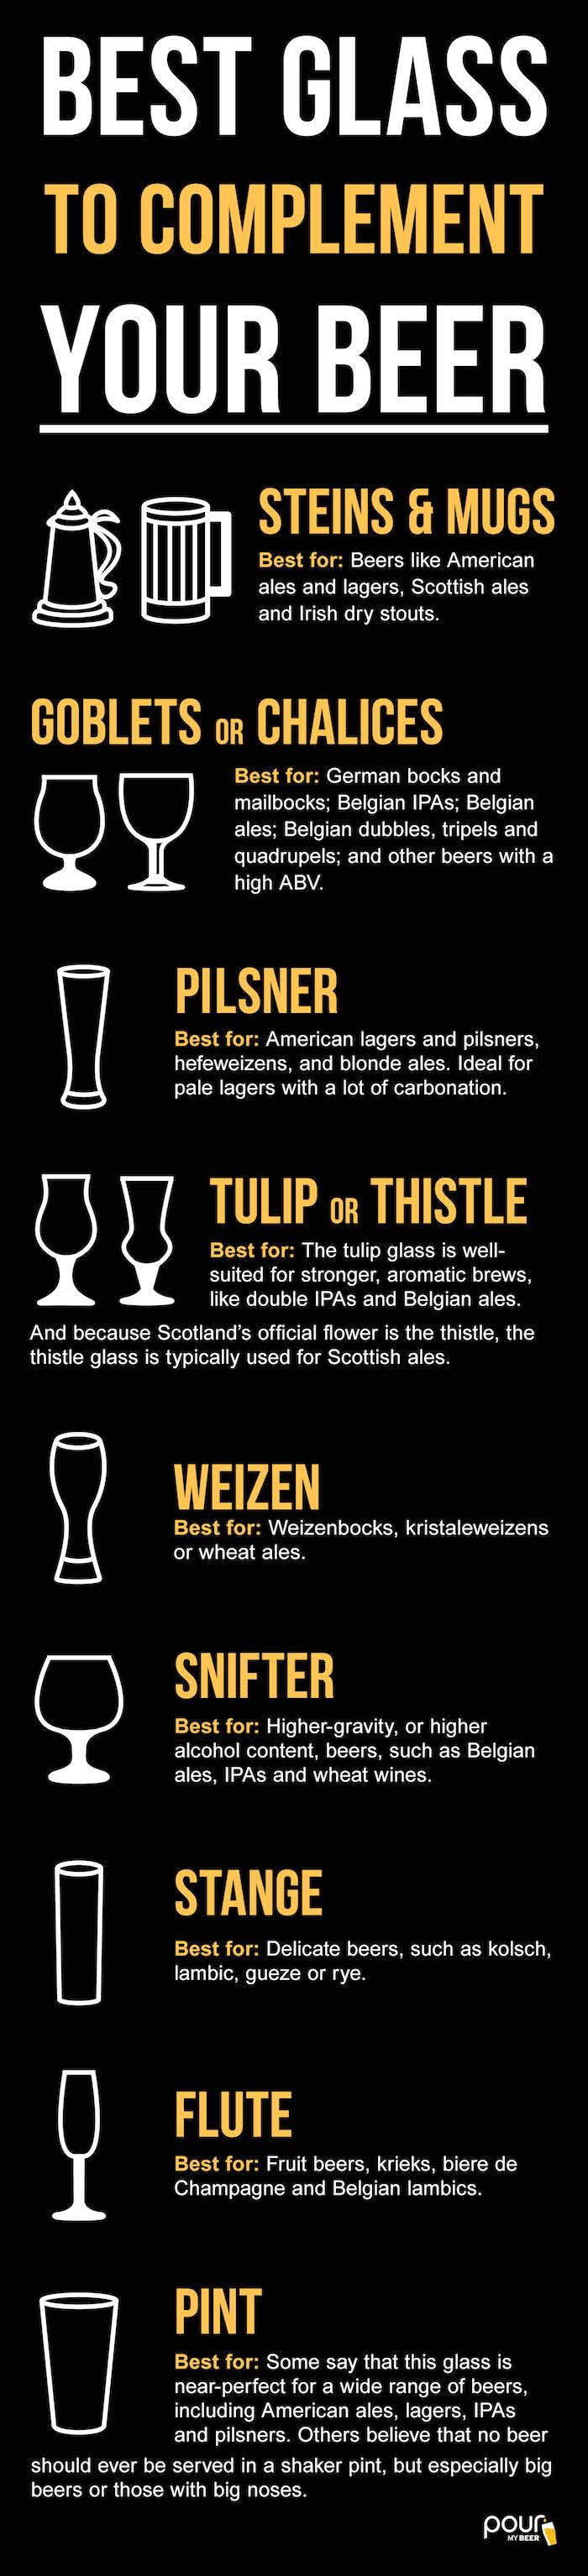 PourMyBeer recommendation of best glass for your beer